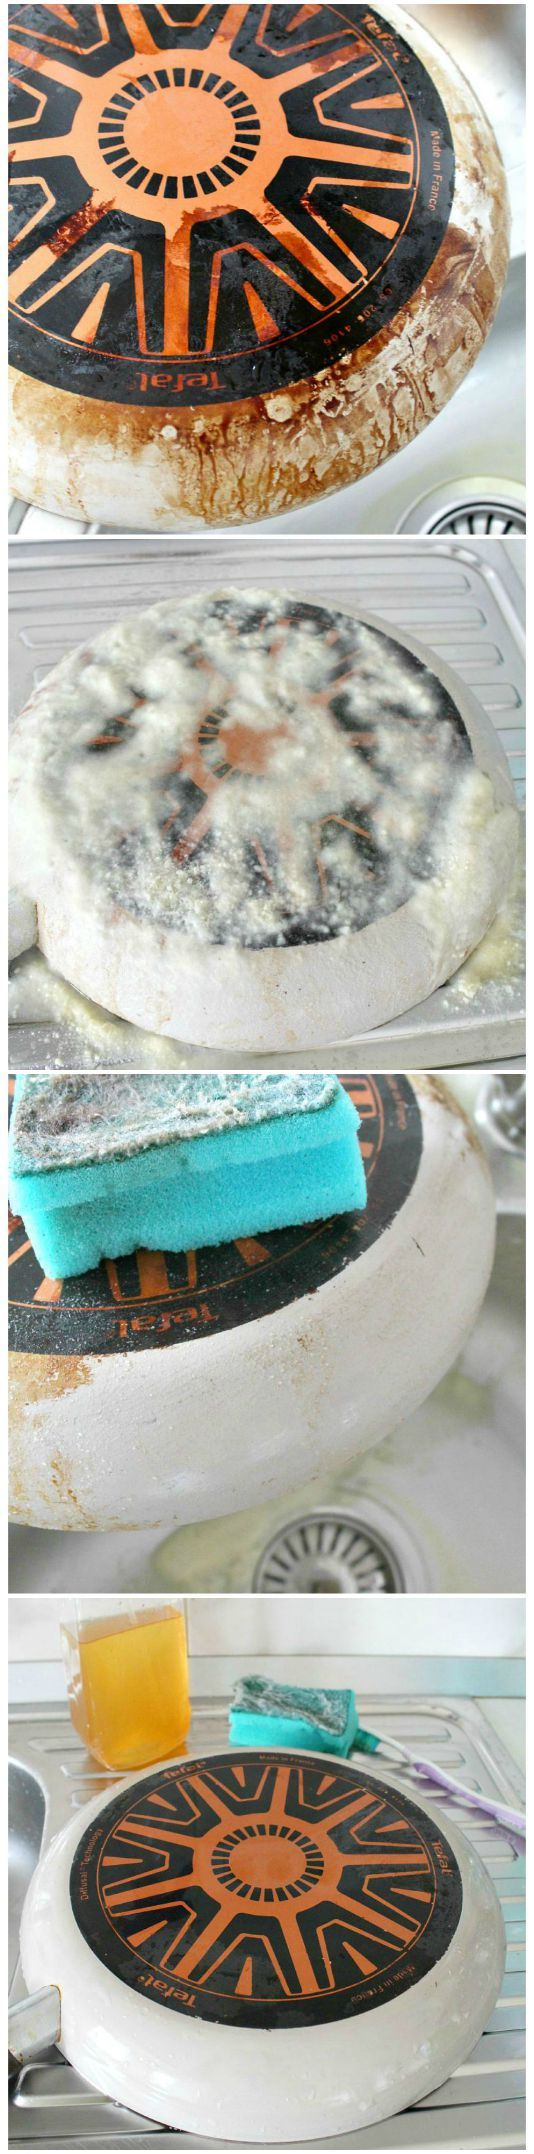 Natural way to clean pans and pots Tired of spending too much time scrubbing your pots and pans? This natural way to clean pans and pots is not only easy and enjoyable but it will extend the life of your pans and pots too. #cleaning #cleaningtips #homemaking